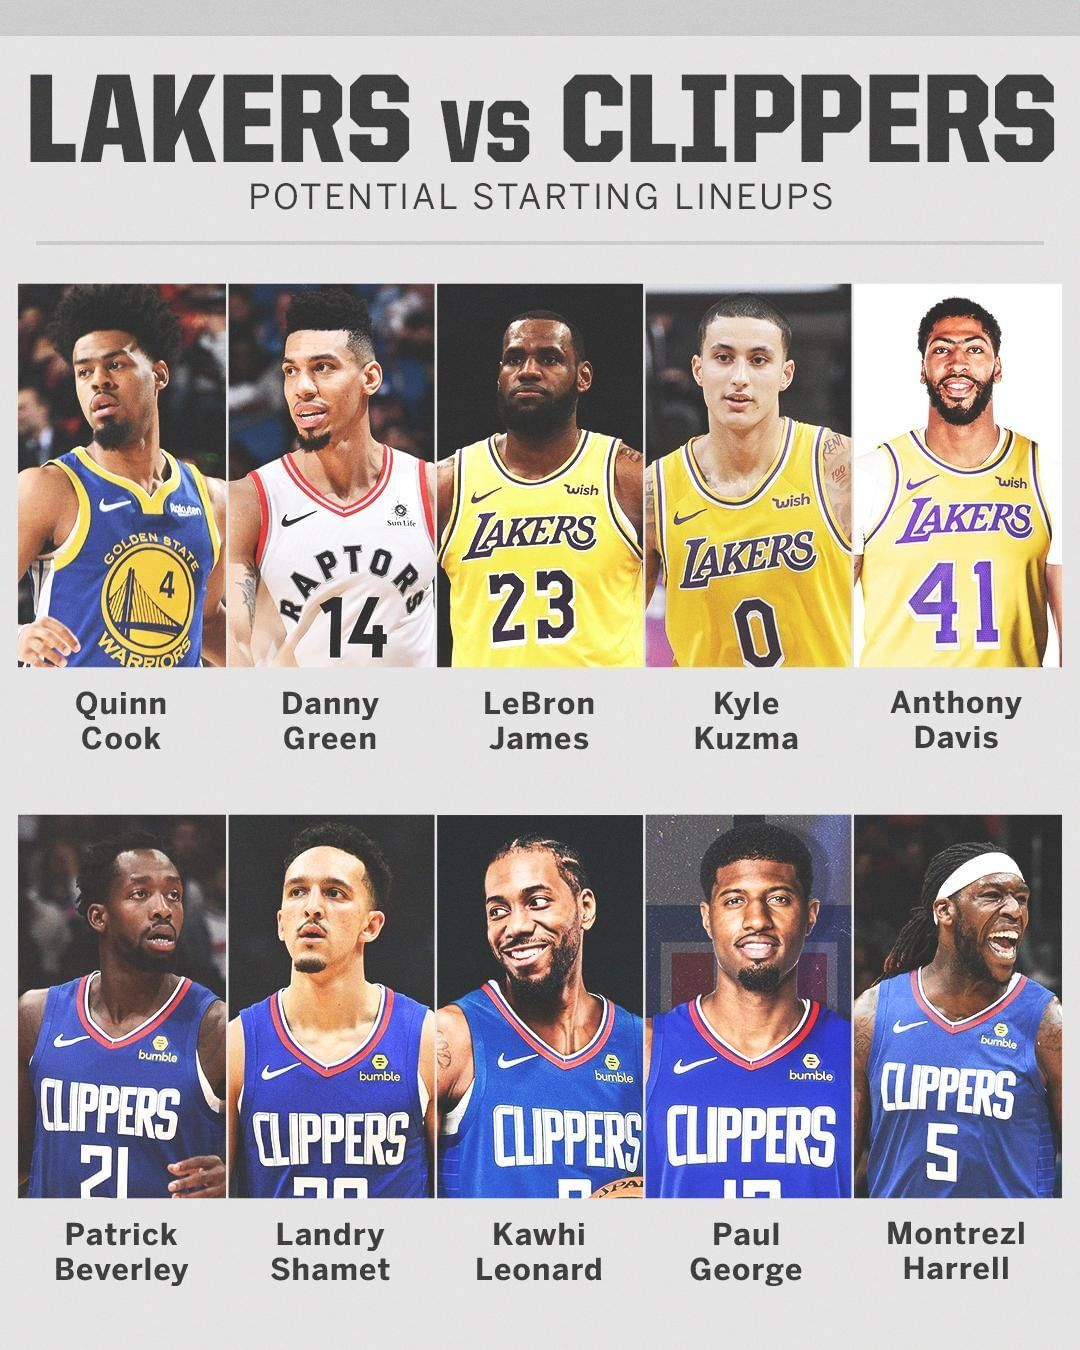 Espn On Instagram The Battle Of La Is Going To Be Fun To Watch Lakers Vs Clippers Nba Basketball Art Lakers Basketball